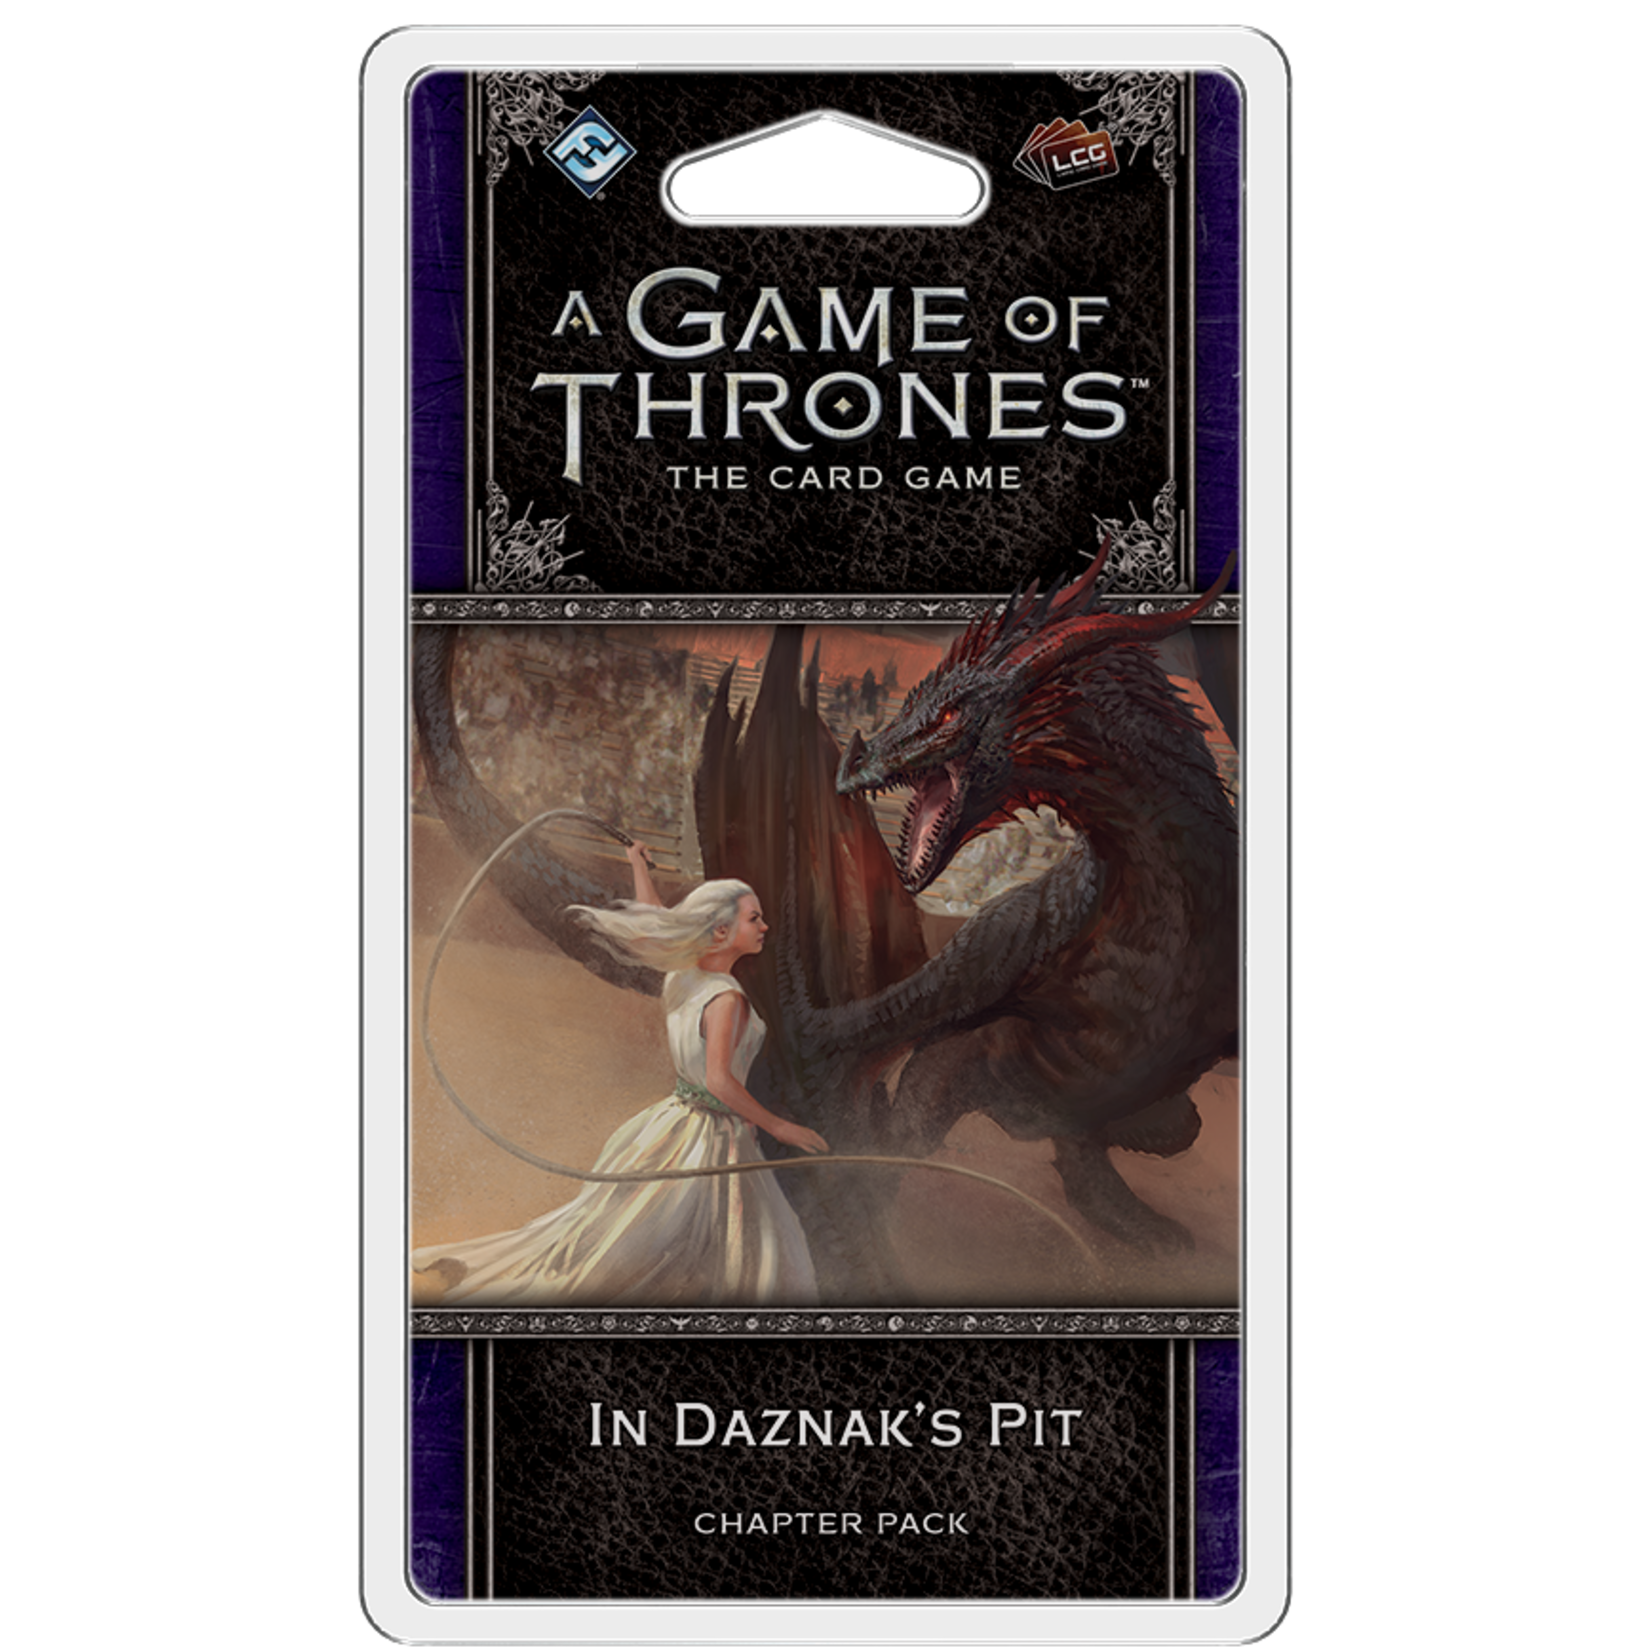 Game of Thrones LCG In Daznak's Pit Chapter Pack